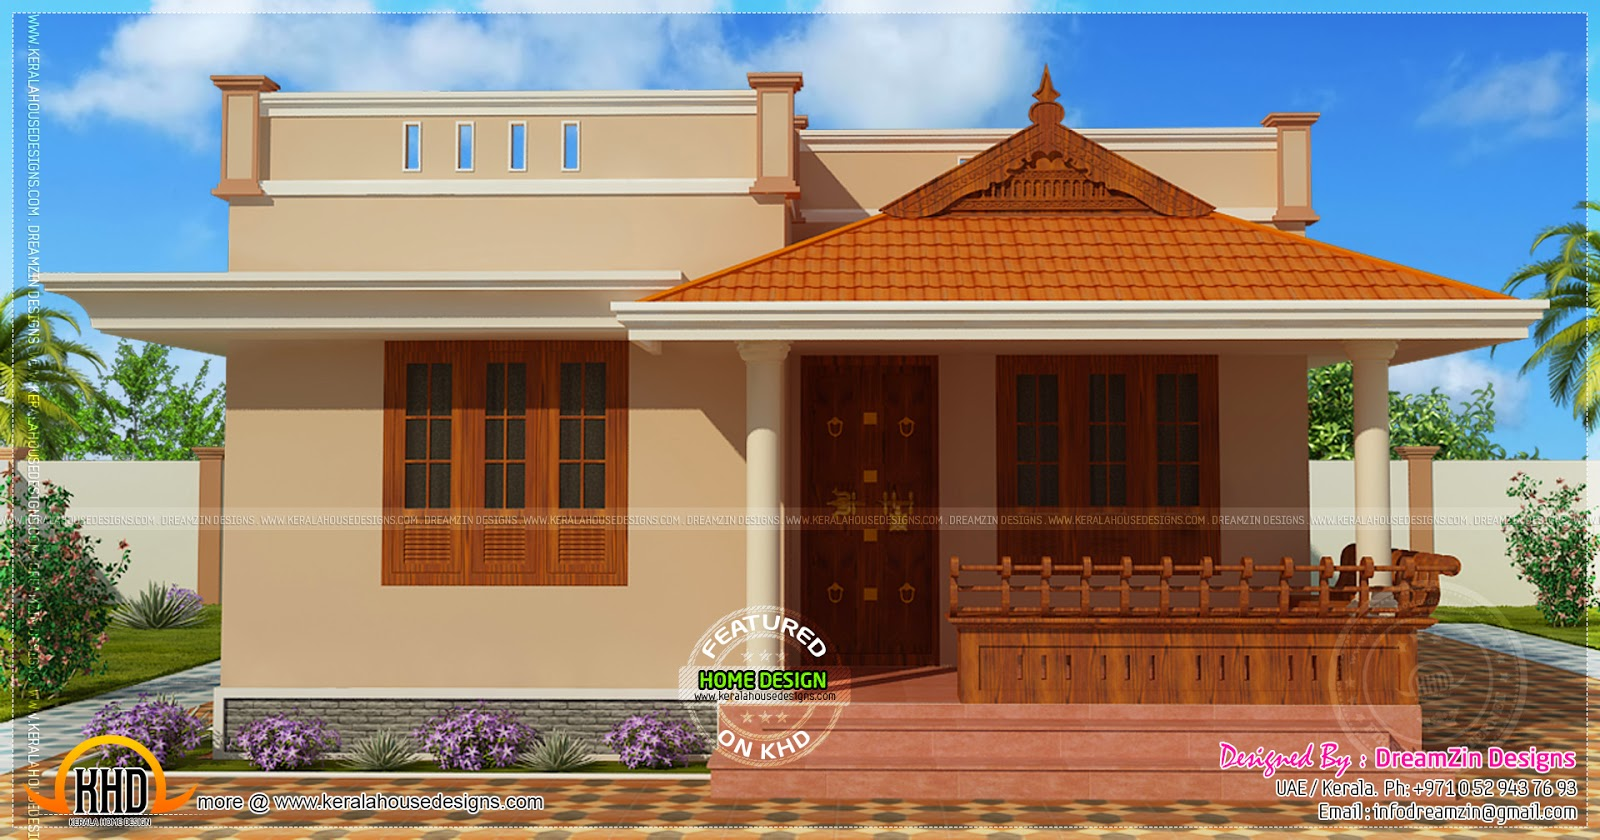 Plans for small houses kerala style House style